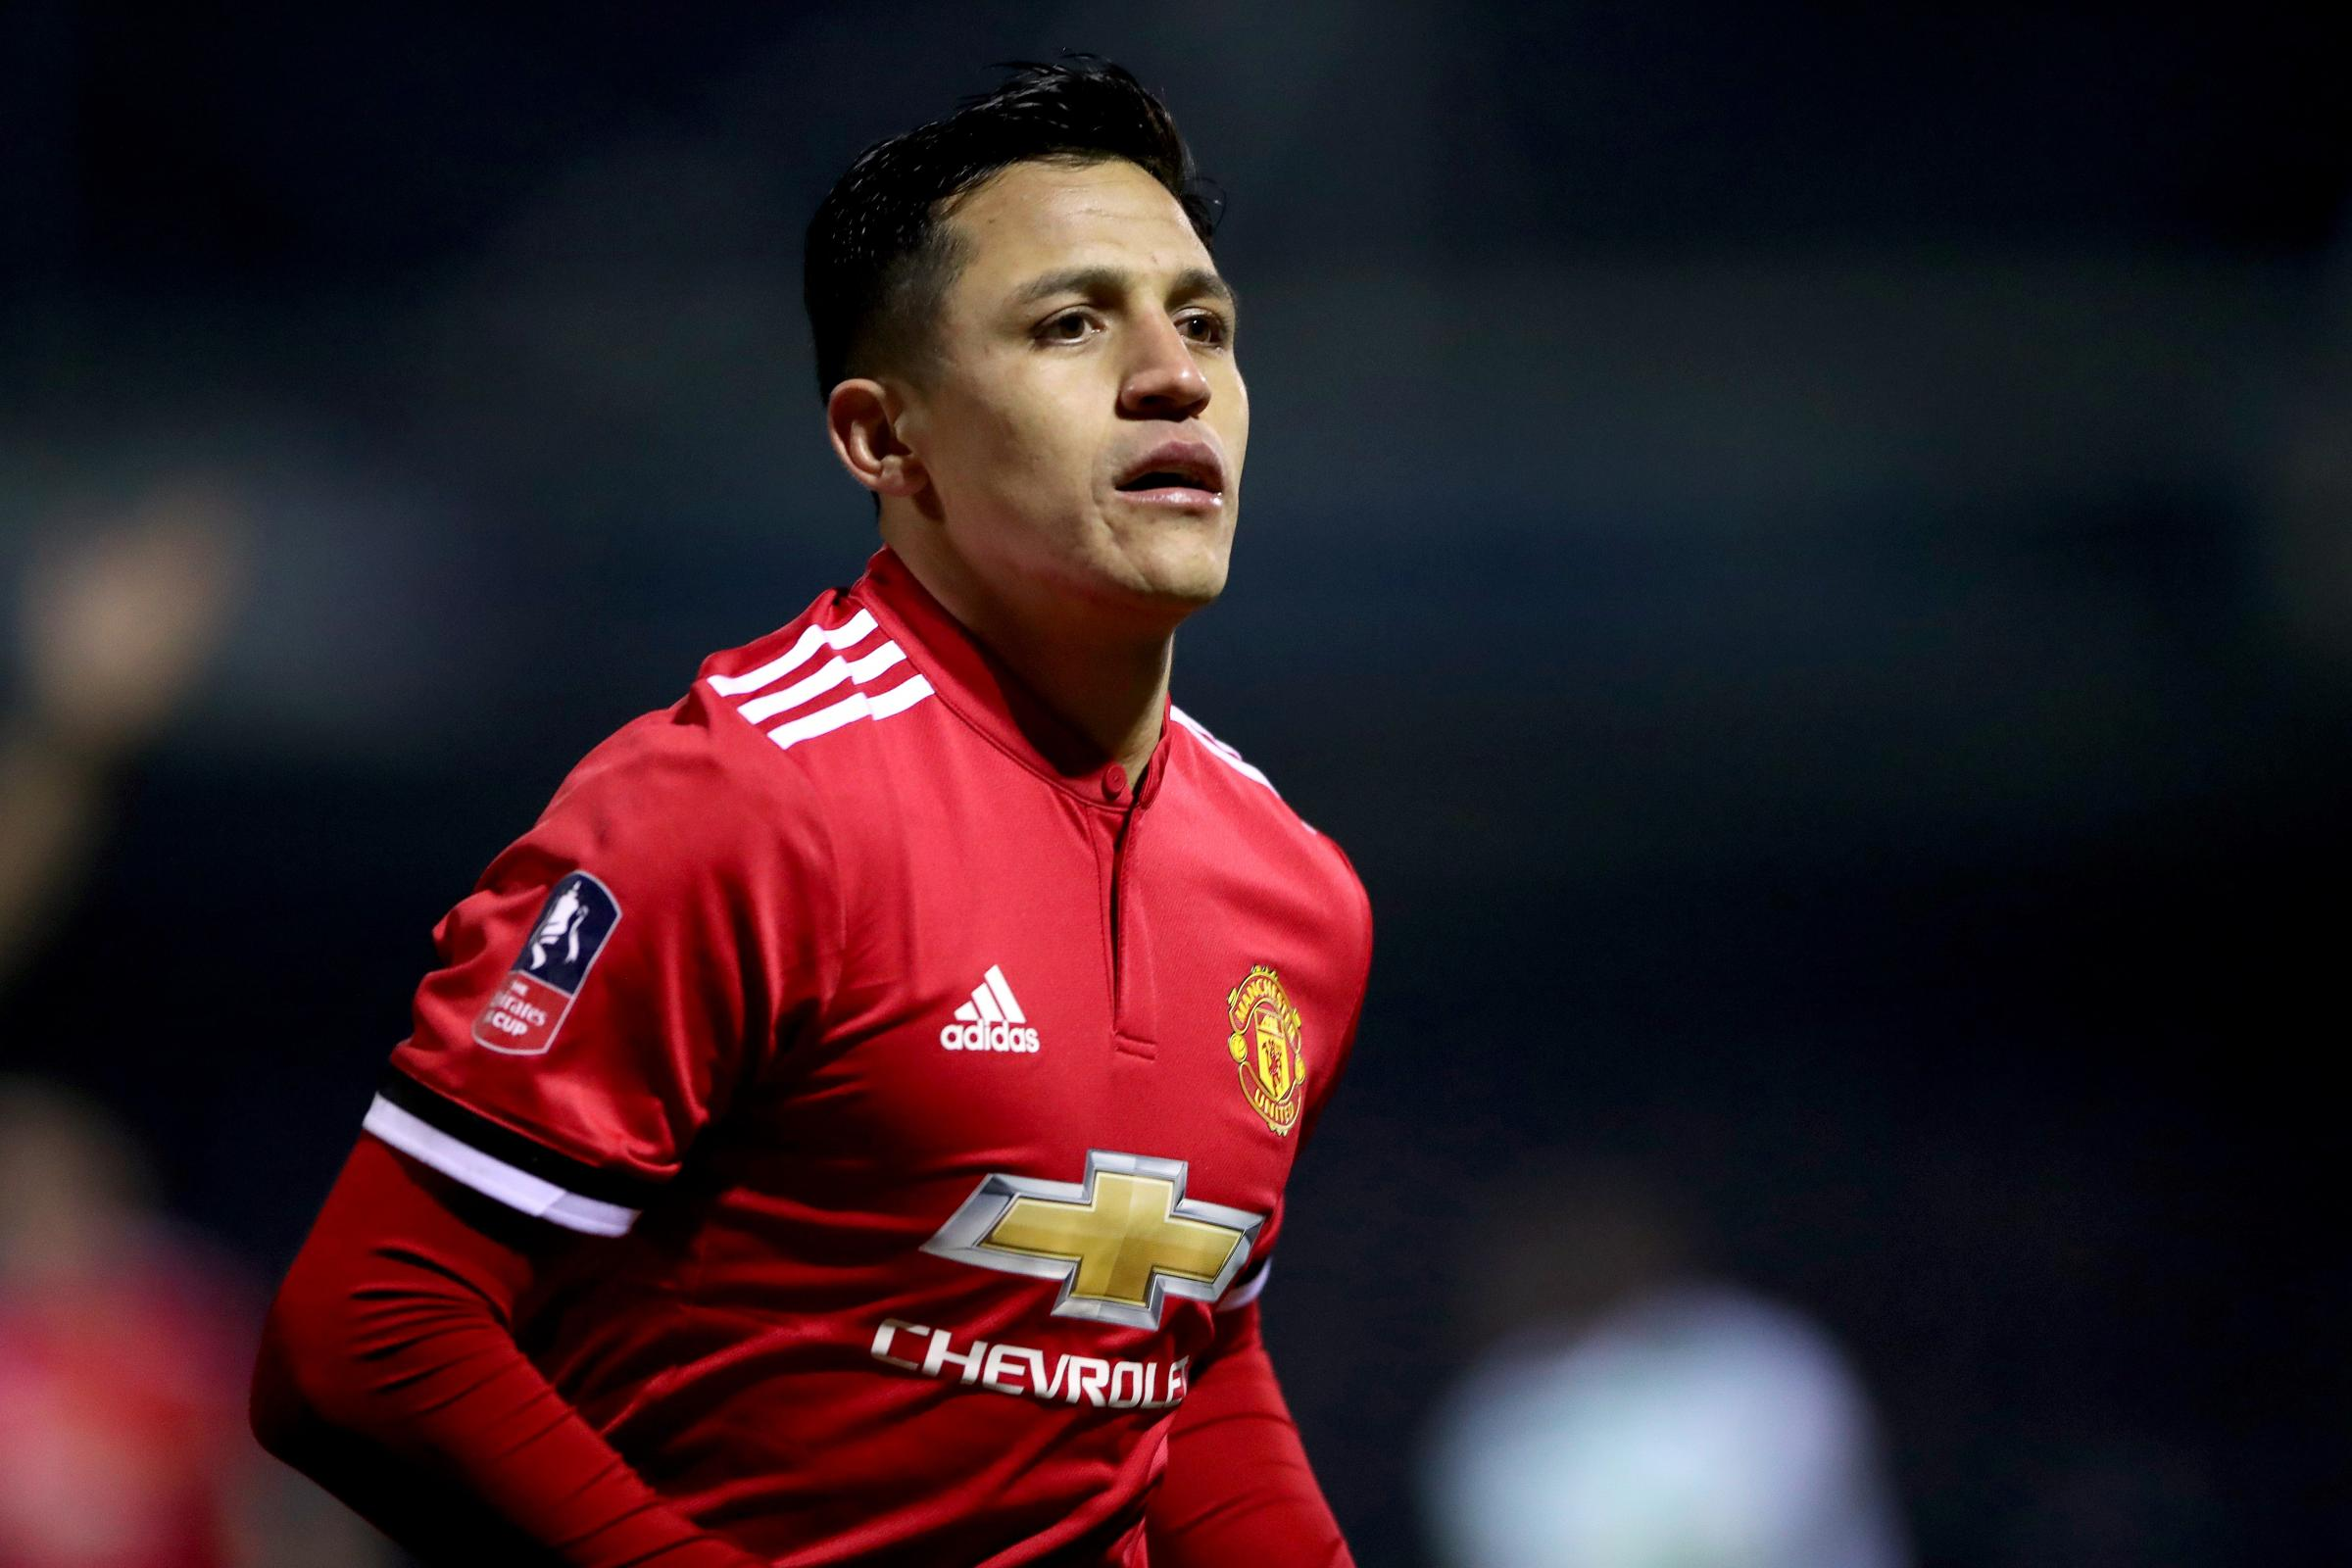 The signing of Alexis Sanchez by Manchester United has been one of the major moves of this January transfer window